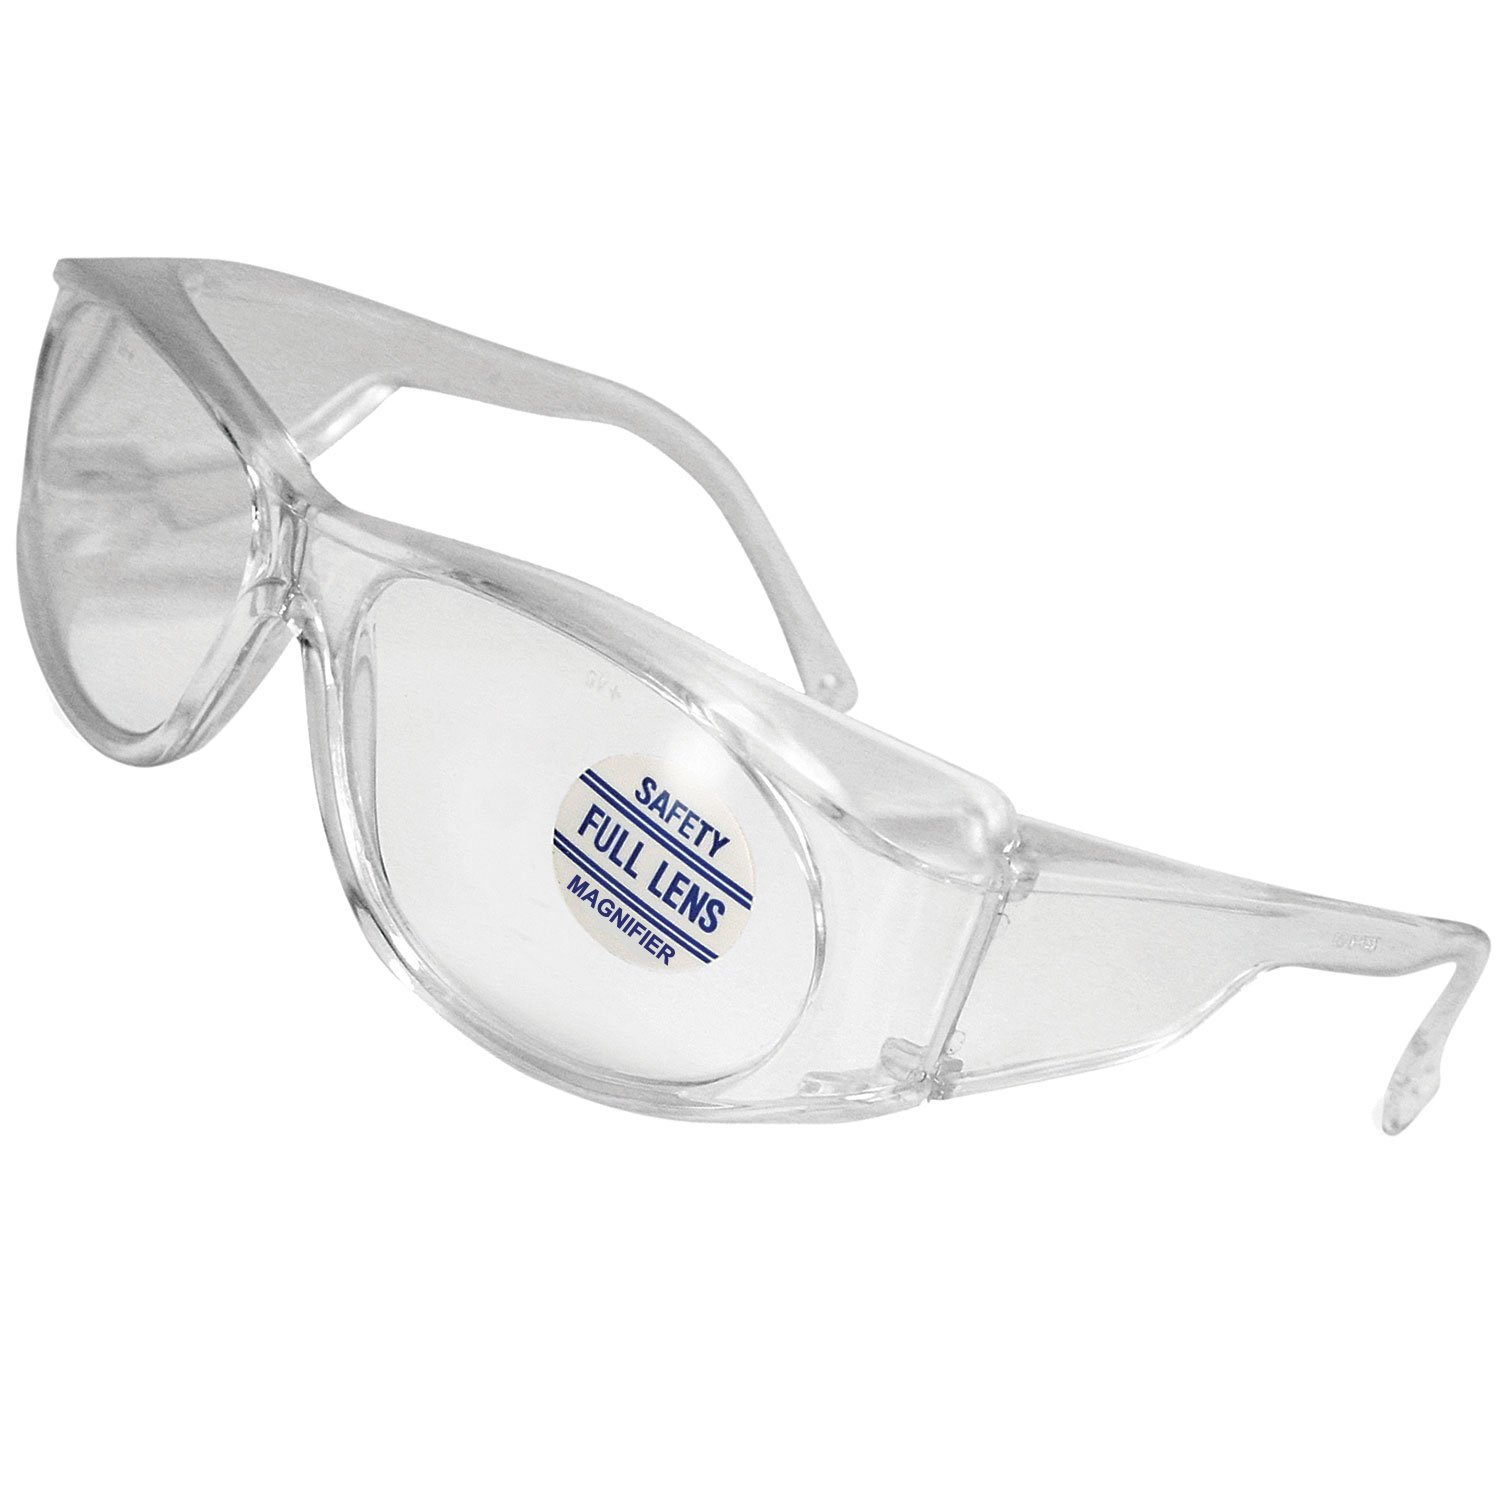 Mag-Safe Full Magnifying Glasses available from 1.25-3.00